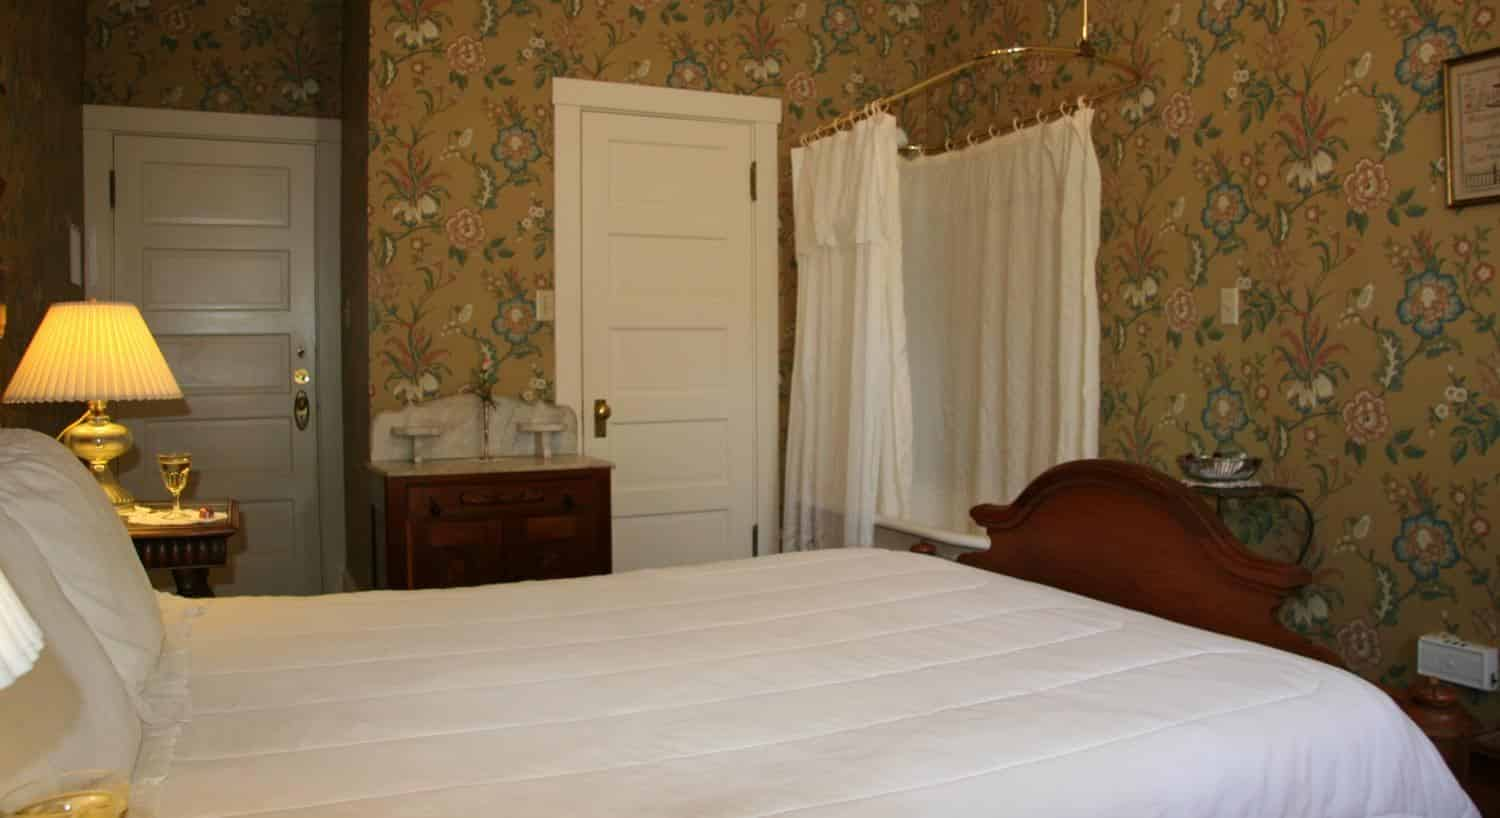 Monterey guest room with gold floral papered walls, wood bed with white bedding, and in-room tub